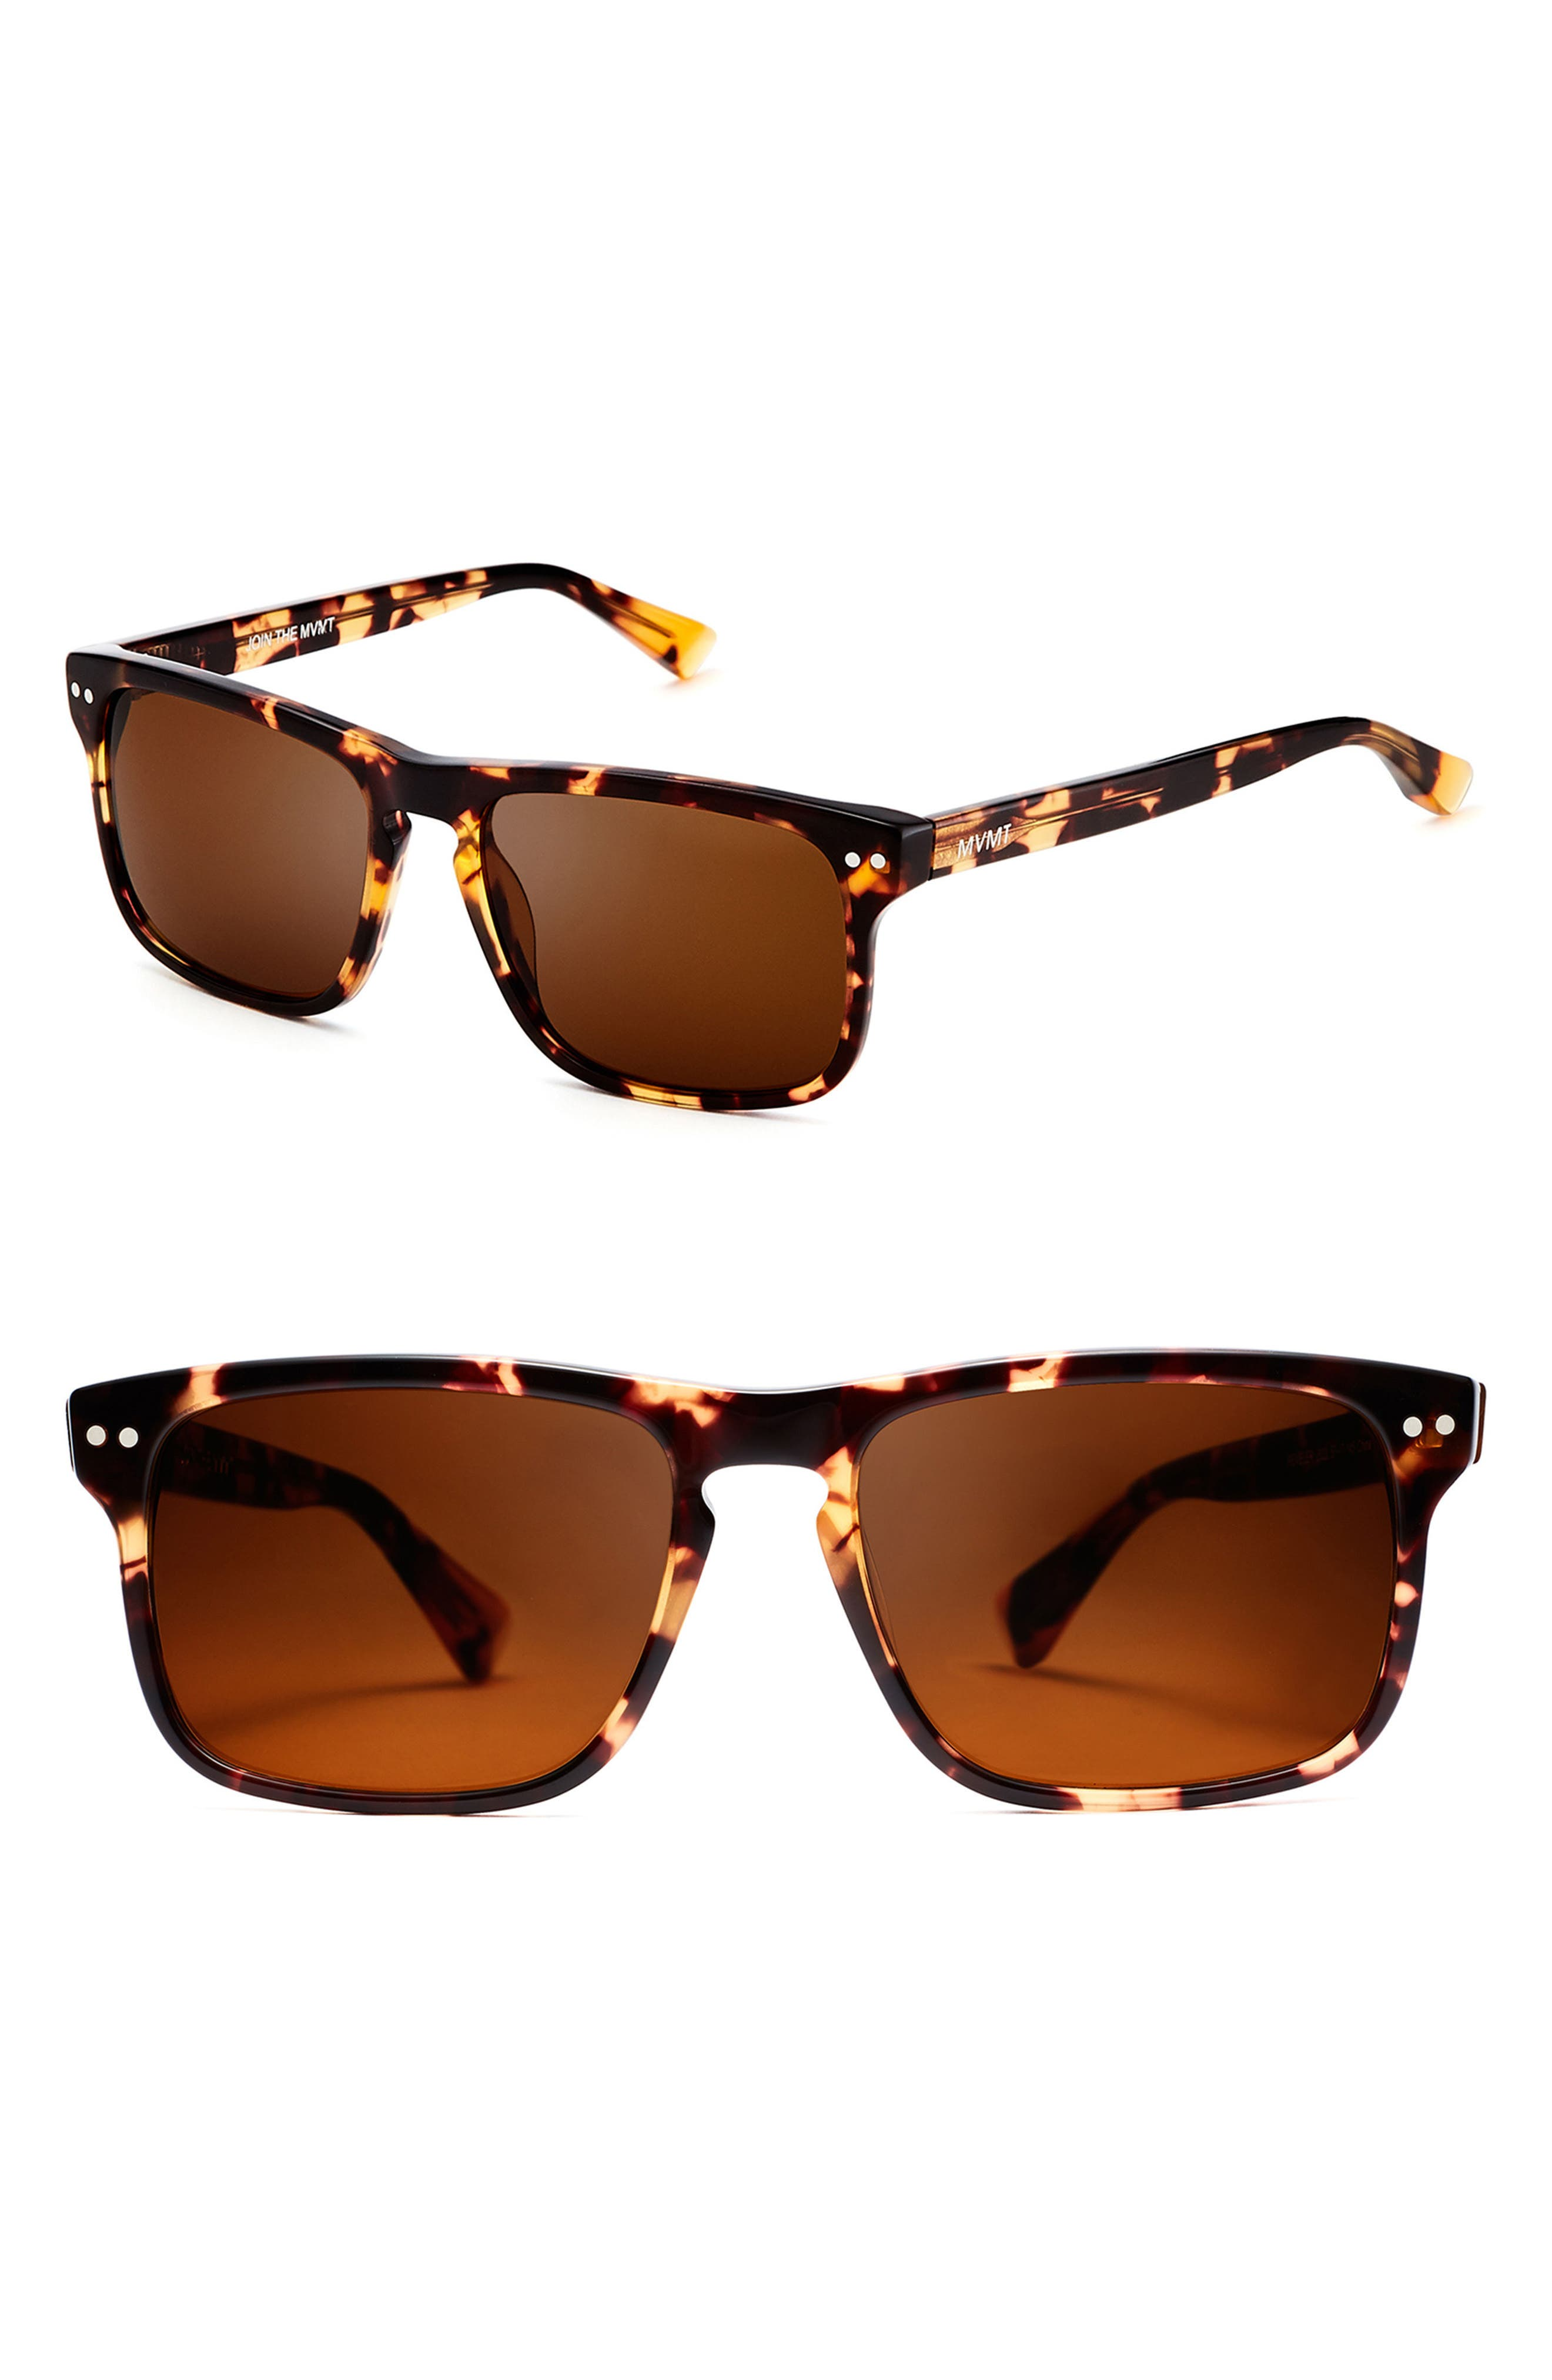 Reveler 57mm Polarized Sunglasses,                             Main thumbnail 1, color,                             Amber Tortoise